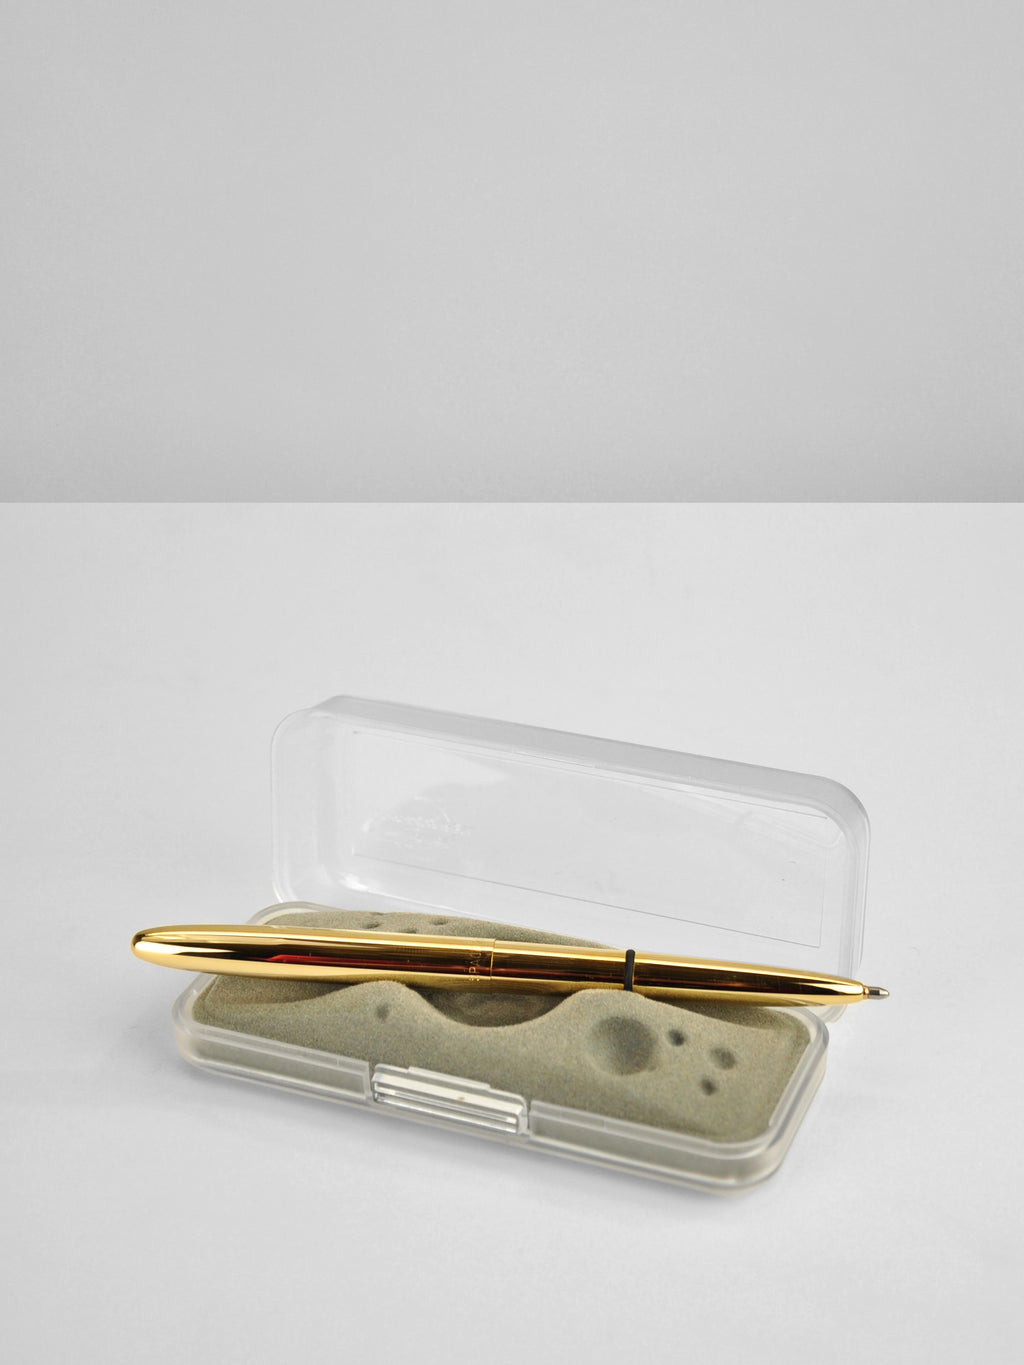 Fisher - Space Pen / Laquered Brass